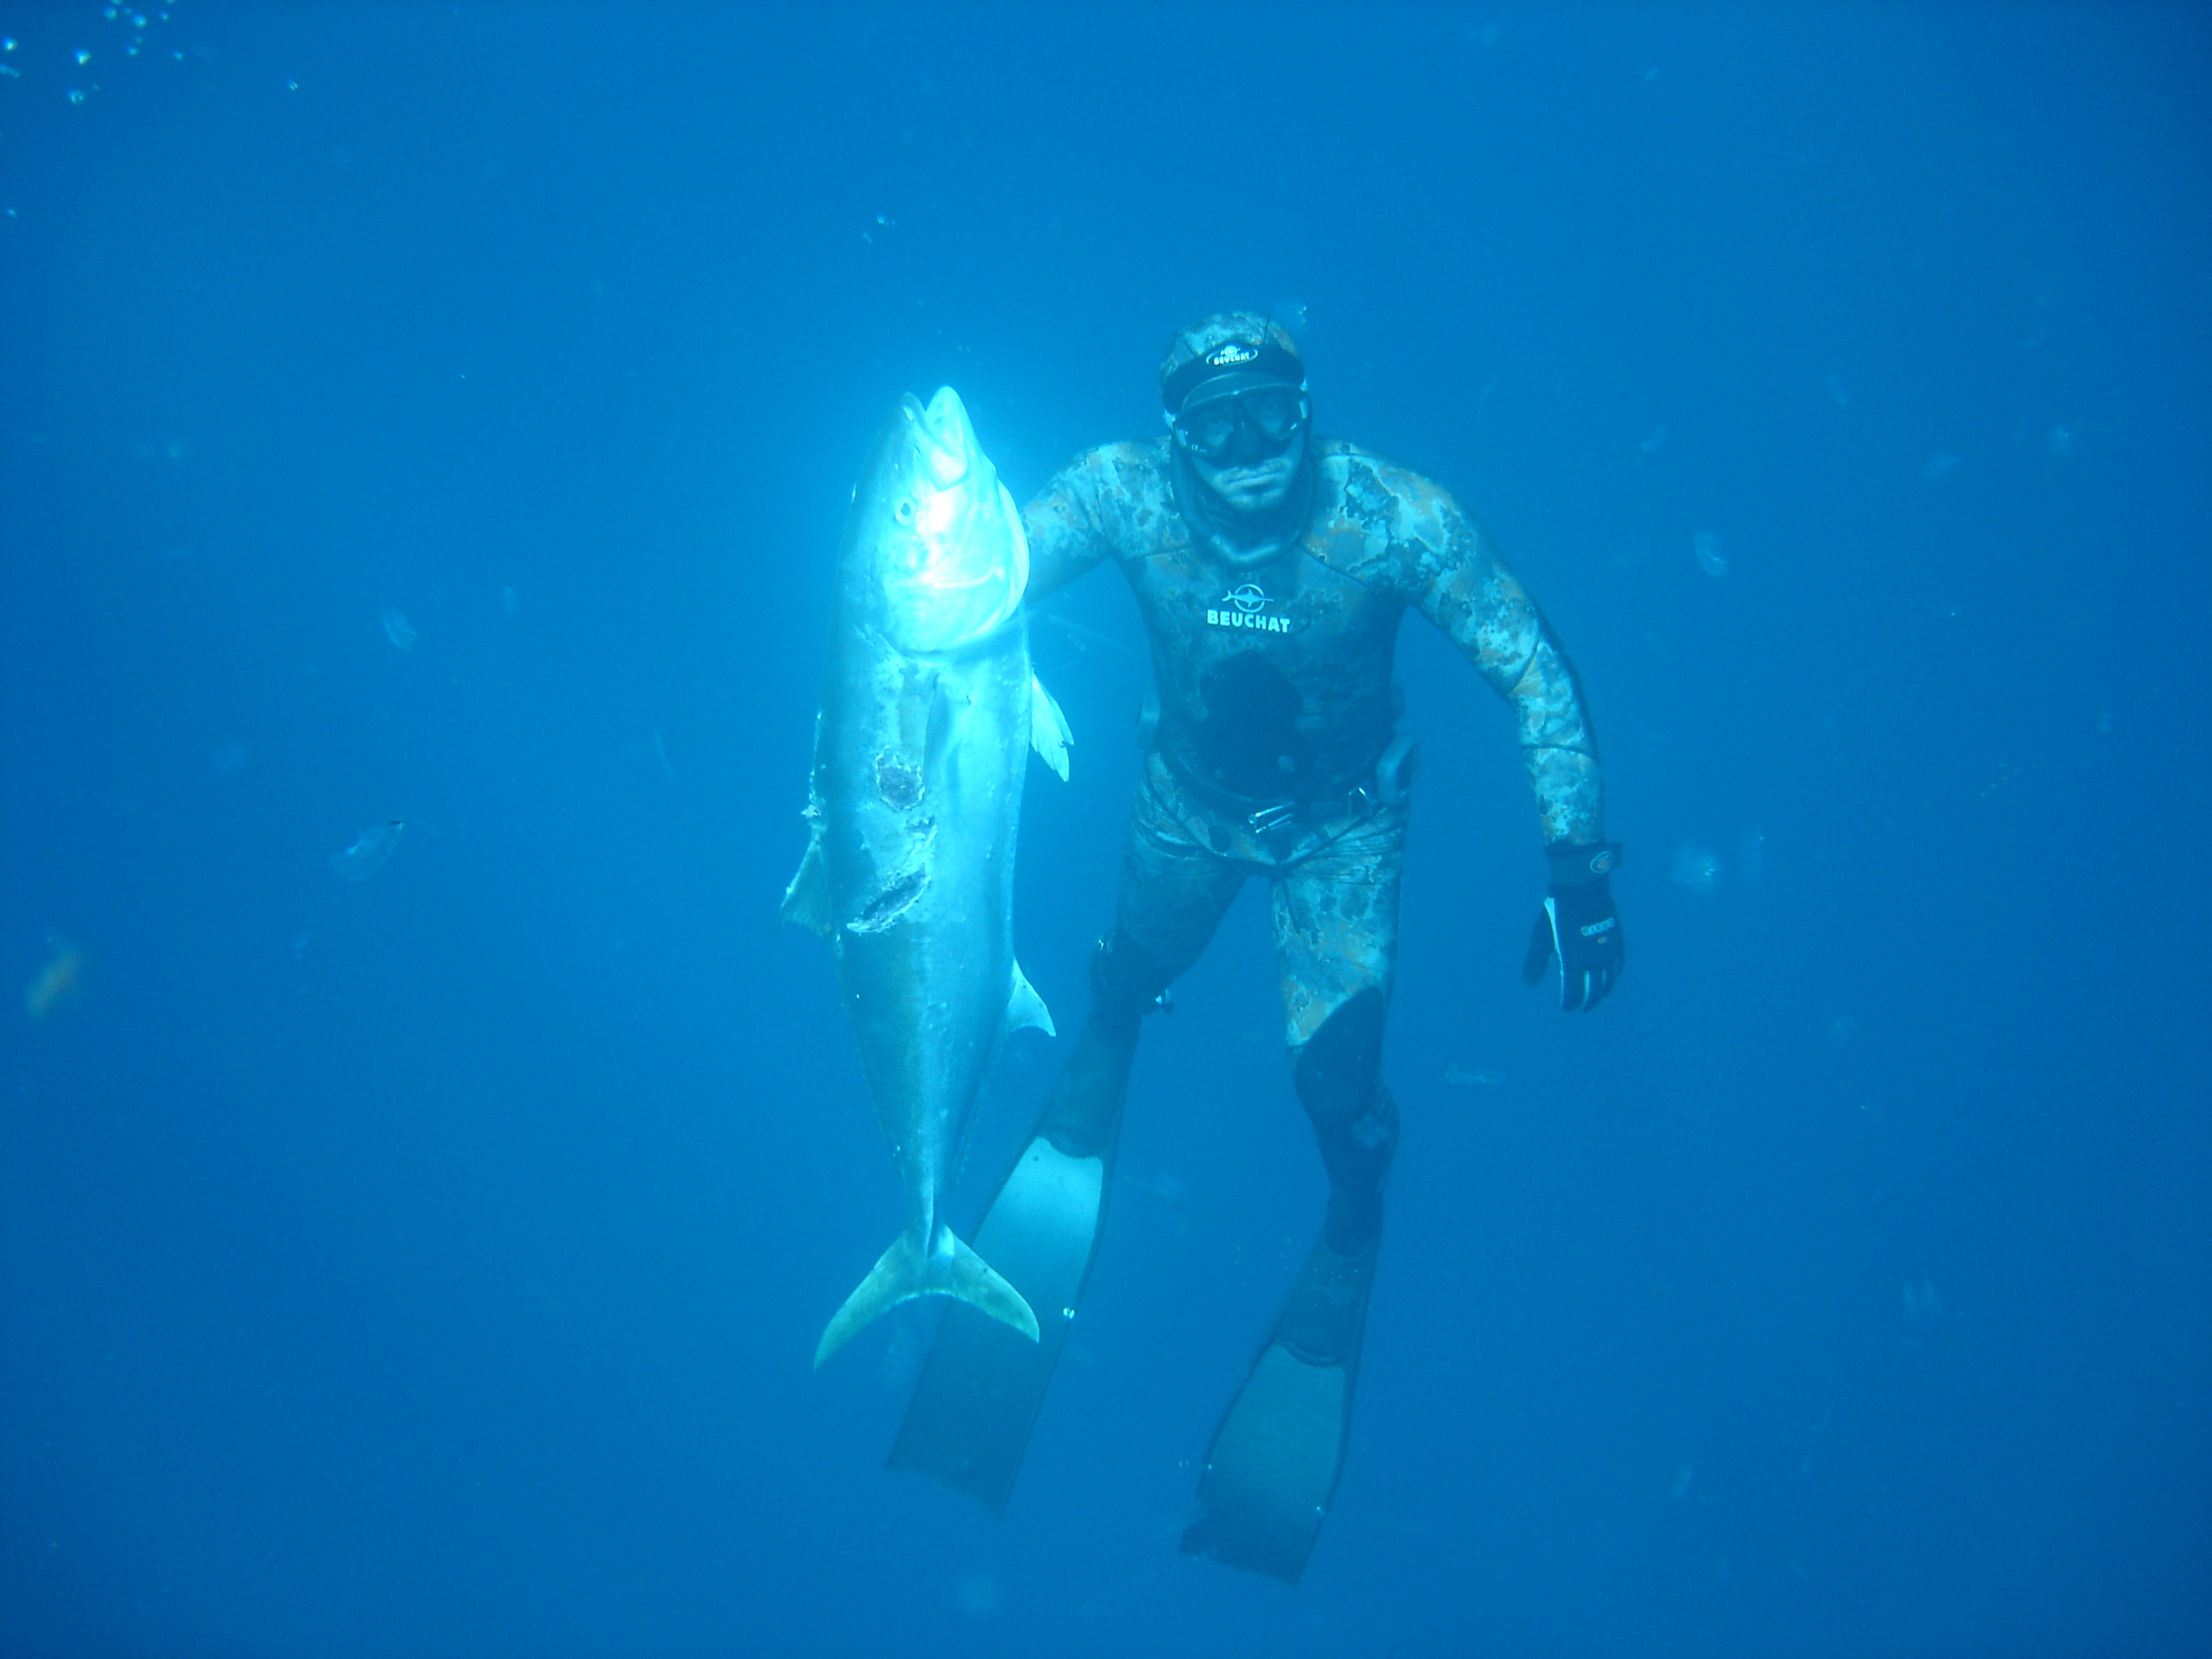 Spearfishing has become a popular sport over the last 10 years